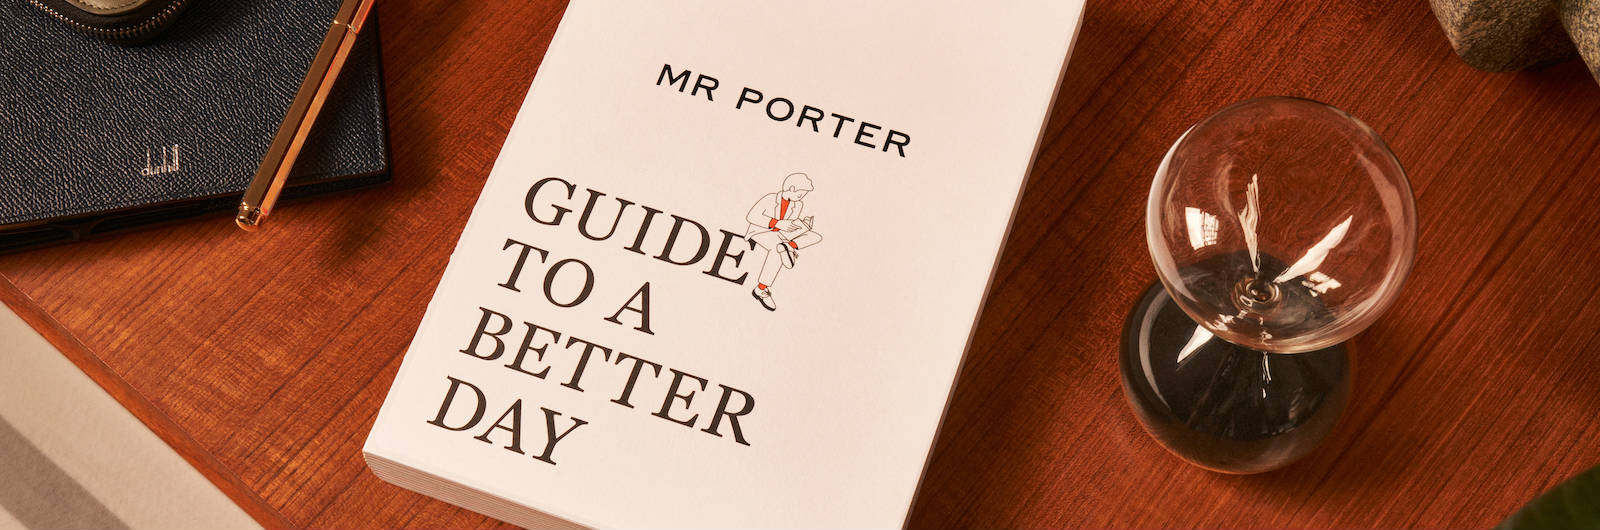 "Let ""The Mr. Porter Guide to a Better Day"" Be Your New Life Coach"